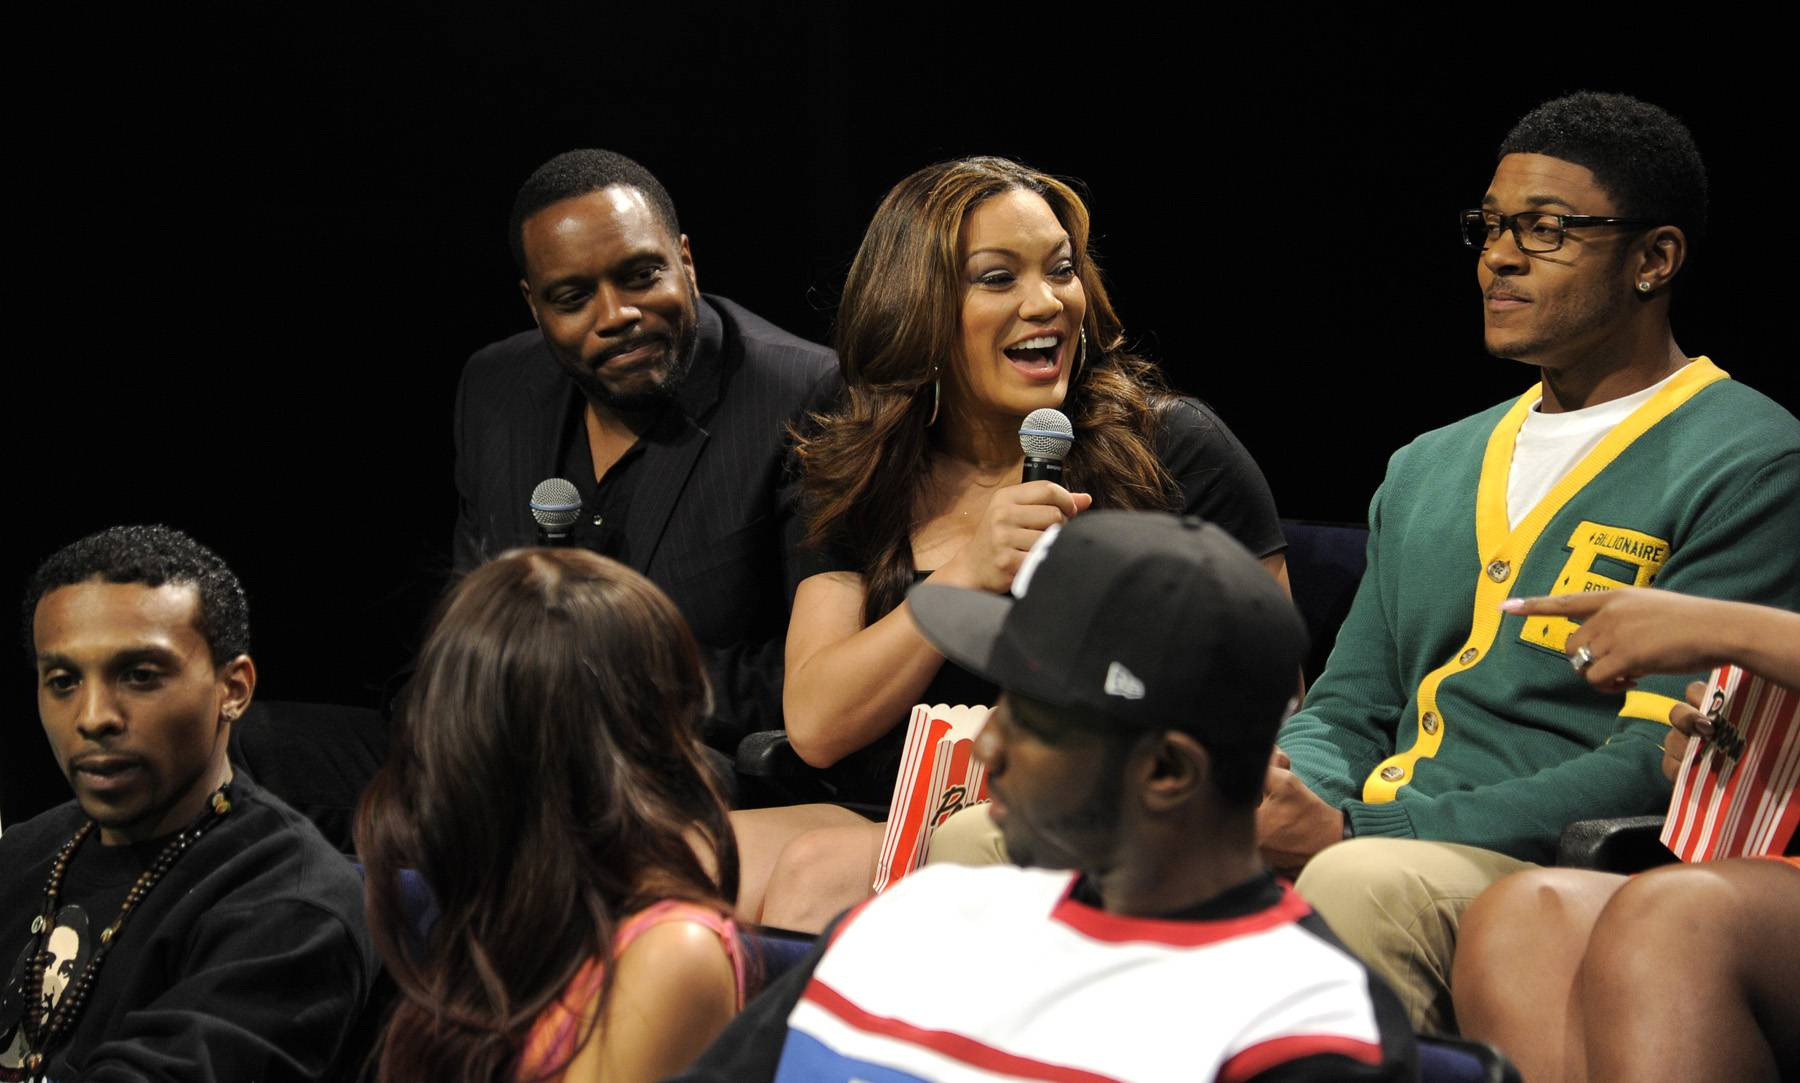 """Having a Moment - Rocsi Diaz and Pooch Hall with the cast of""""Life, Love, Soul"""" at 106 & Park, April 12, 2012. (Photo: John Ricard / BET)"""